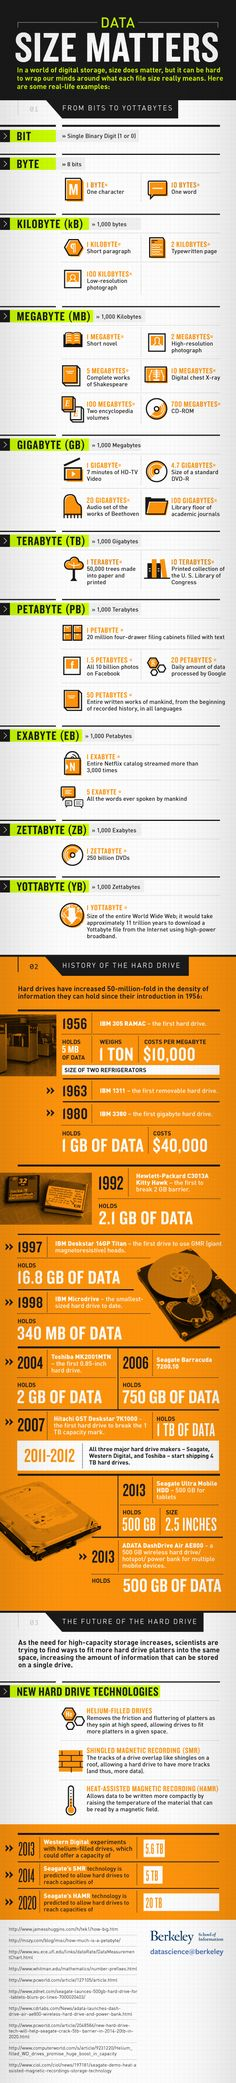 Data Size Matters Infographic via Data Science @ Berkeley.